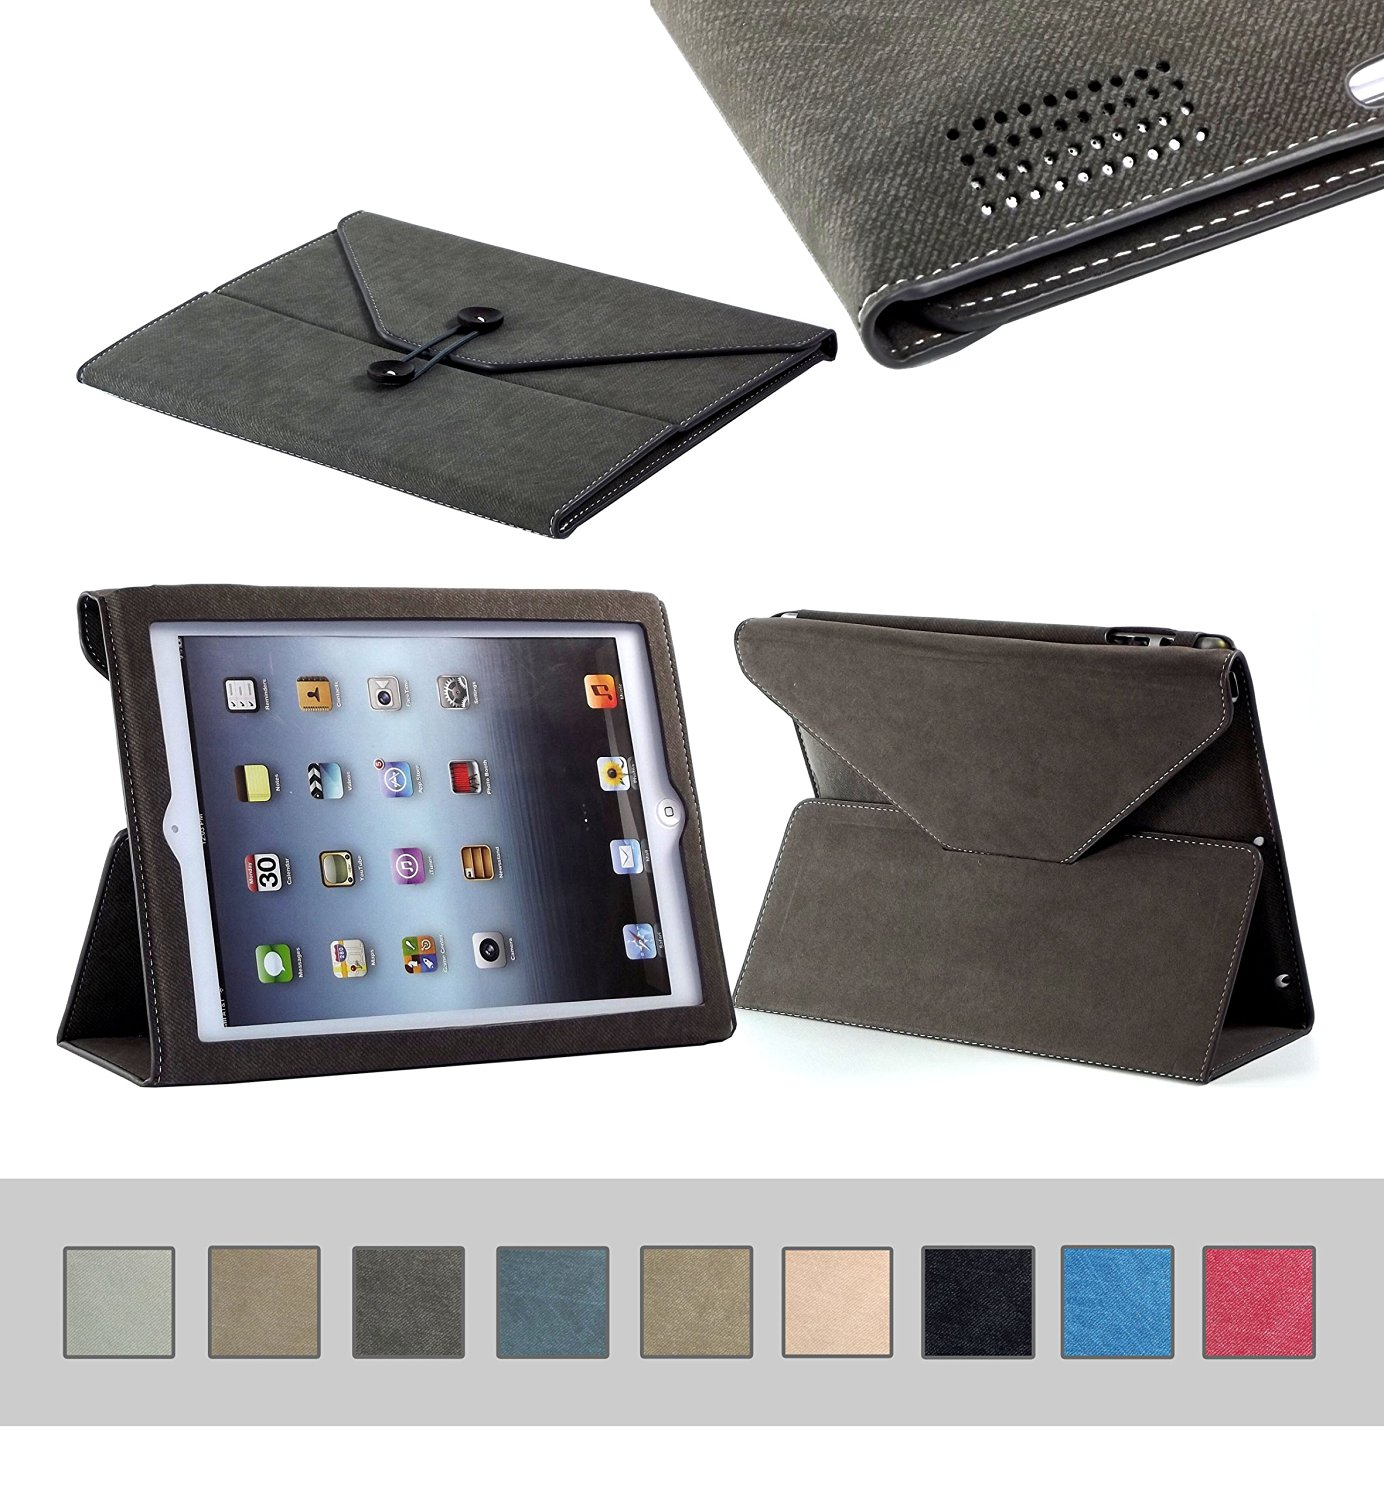 BTM Denim Envelope Jean Portfolio Case Cover Protector for Apple iPad 2nd 2, 3, 4th 4 Generation Retina Display w/ Elastic Strap & Great Holder | Cute For The Girly Girl | Protective Durable Designer Stand | Cheap Price, Great Value - Dark Brown